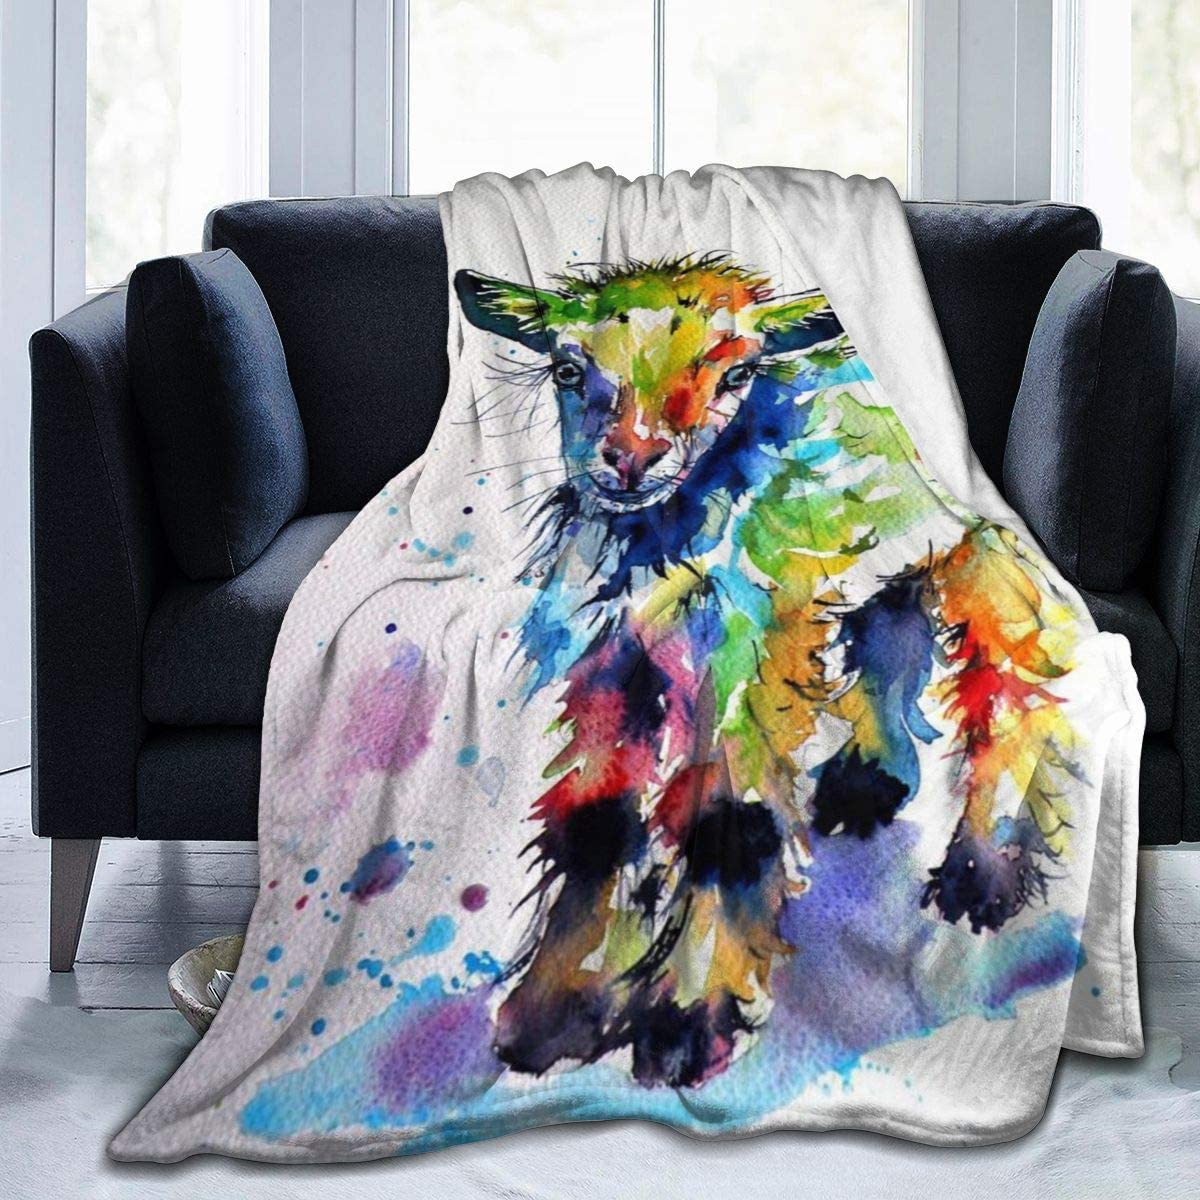 Carwayii Goat Throw Blanket, Cute Baby Lamb Colorful Sherpa Blanket Comfy Bed Blanket for Family Festival Gift